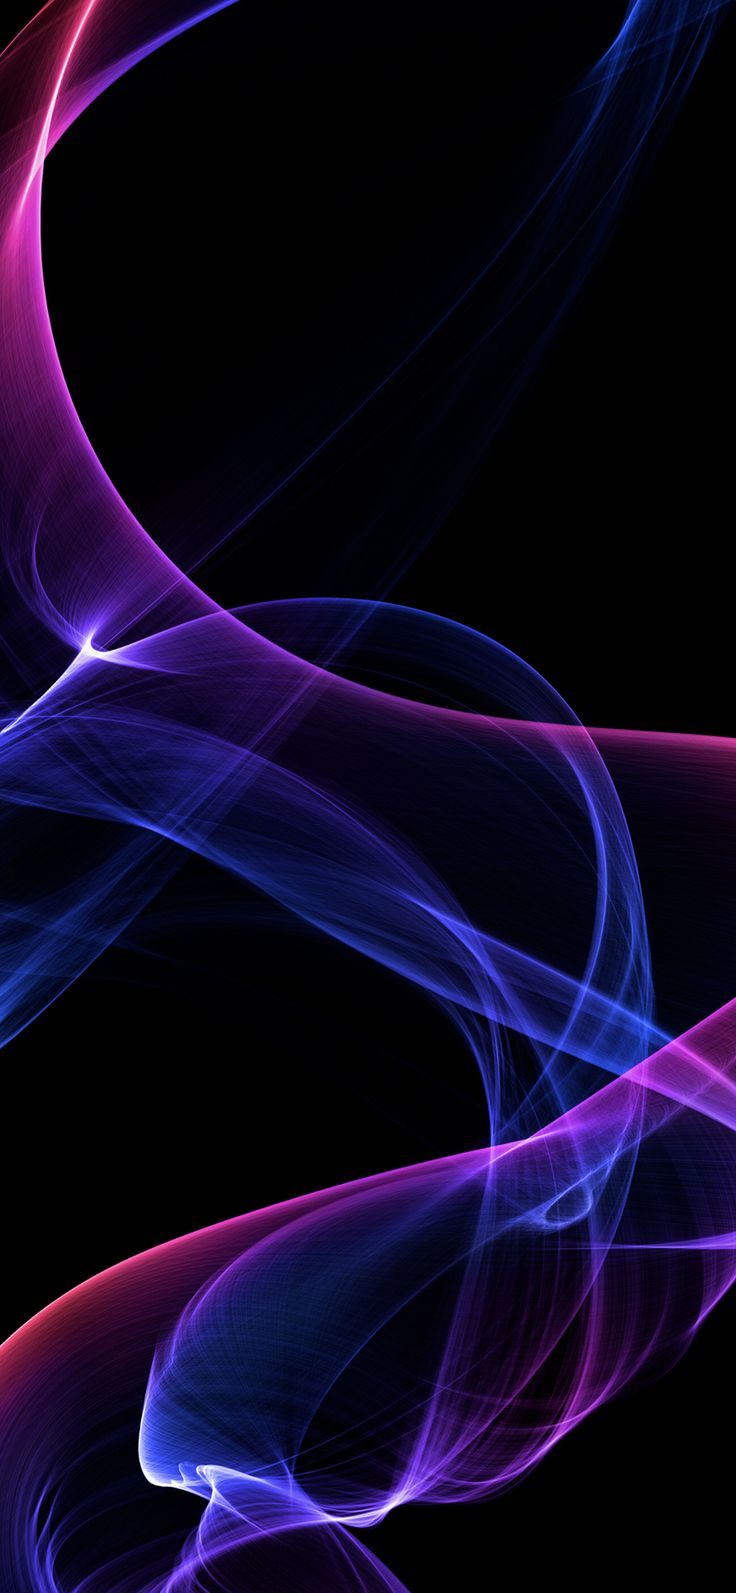 (notitle) | Abstract HD Wallpapers 5